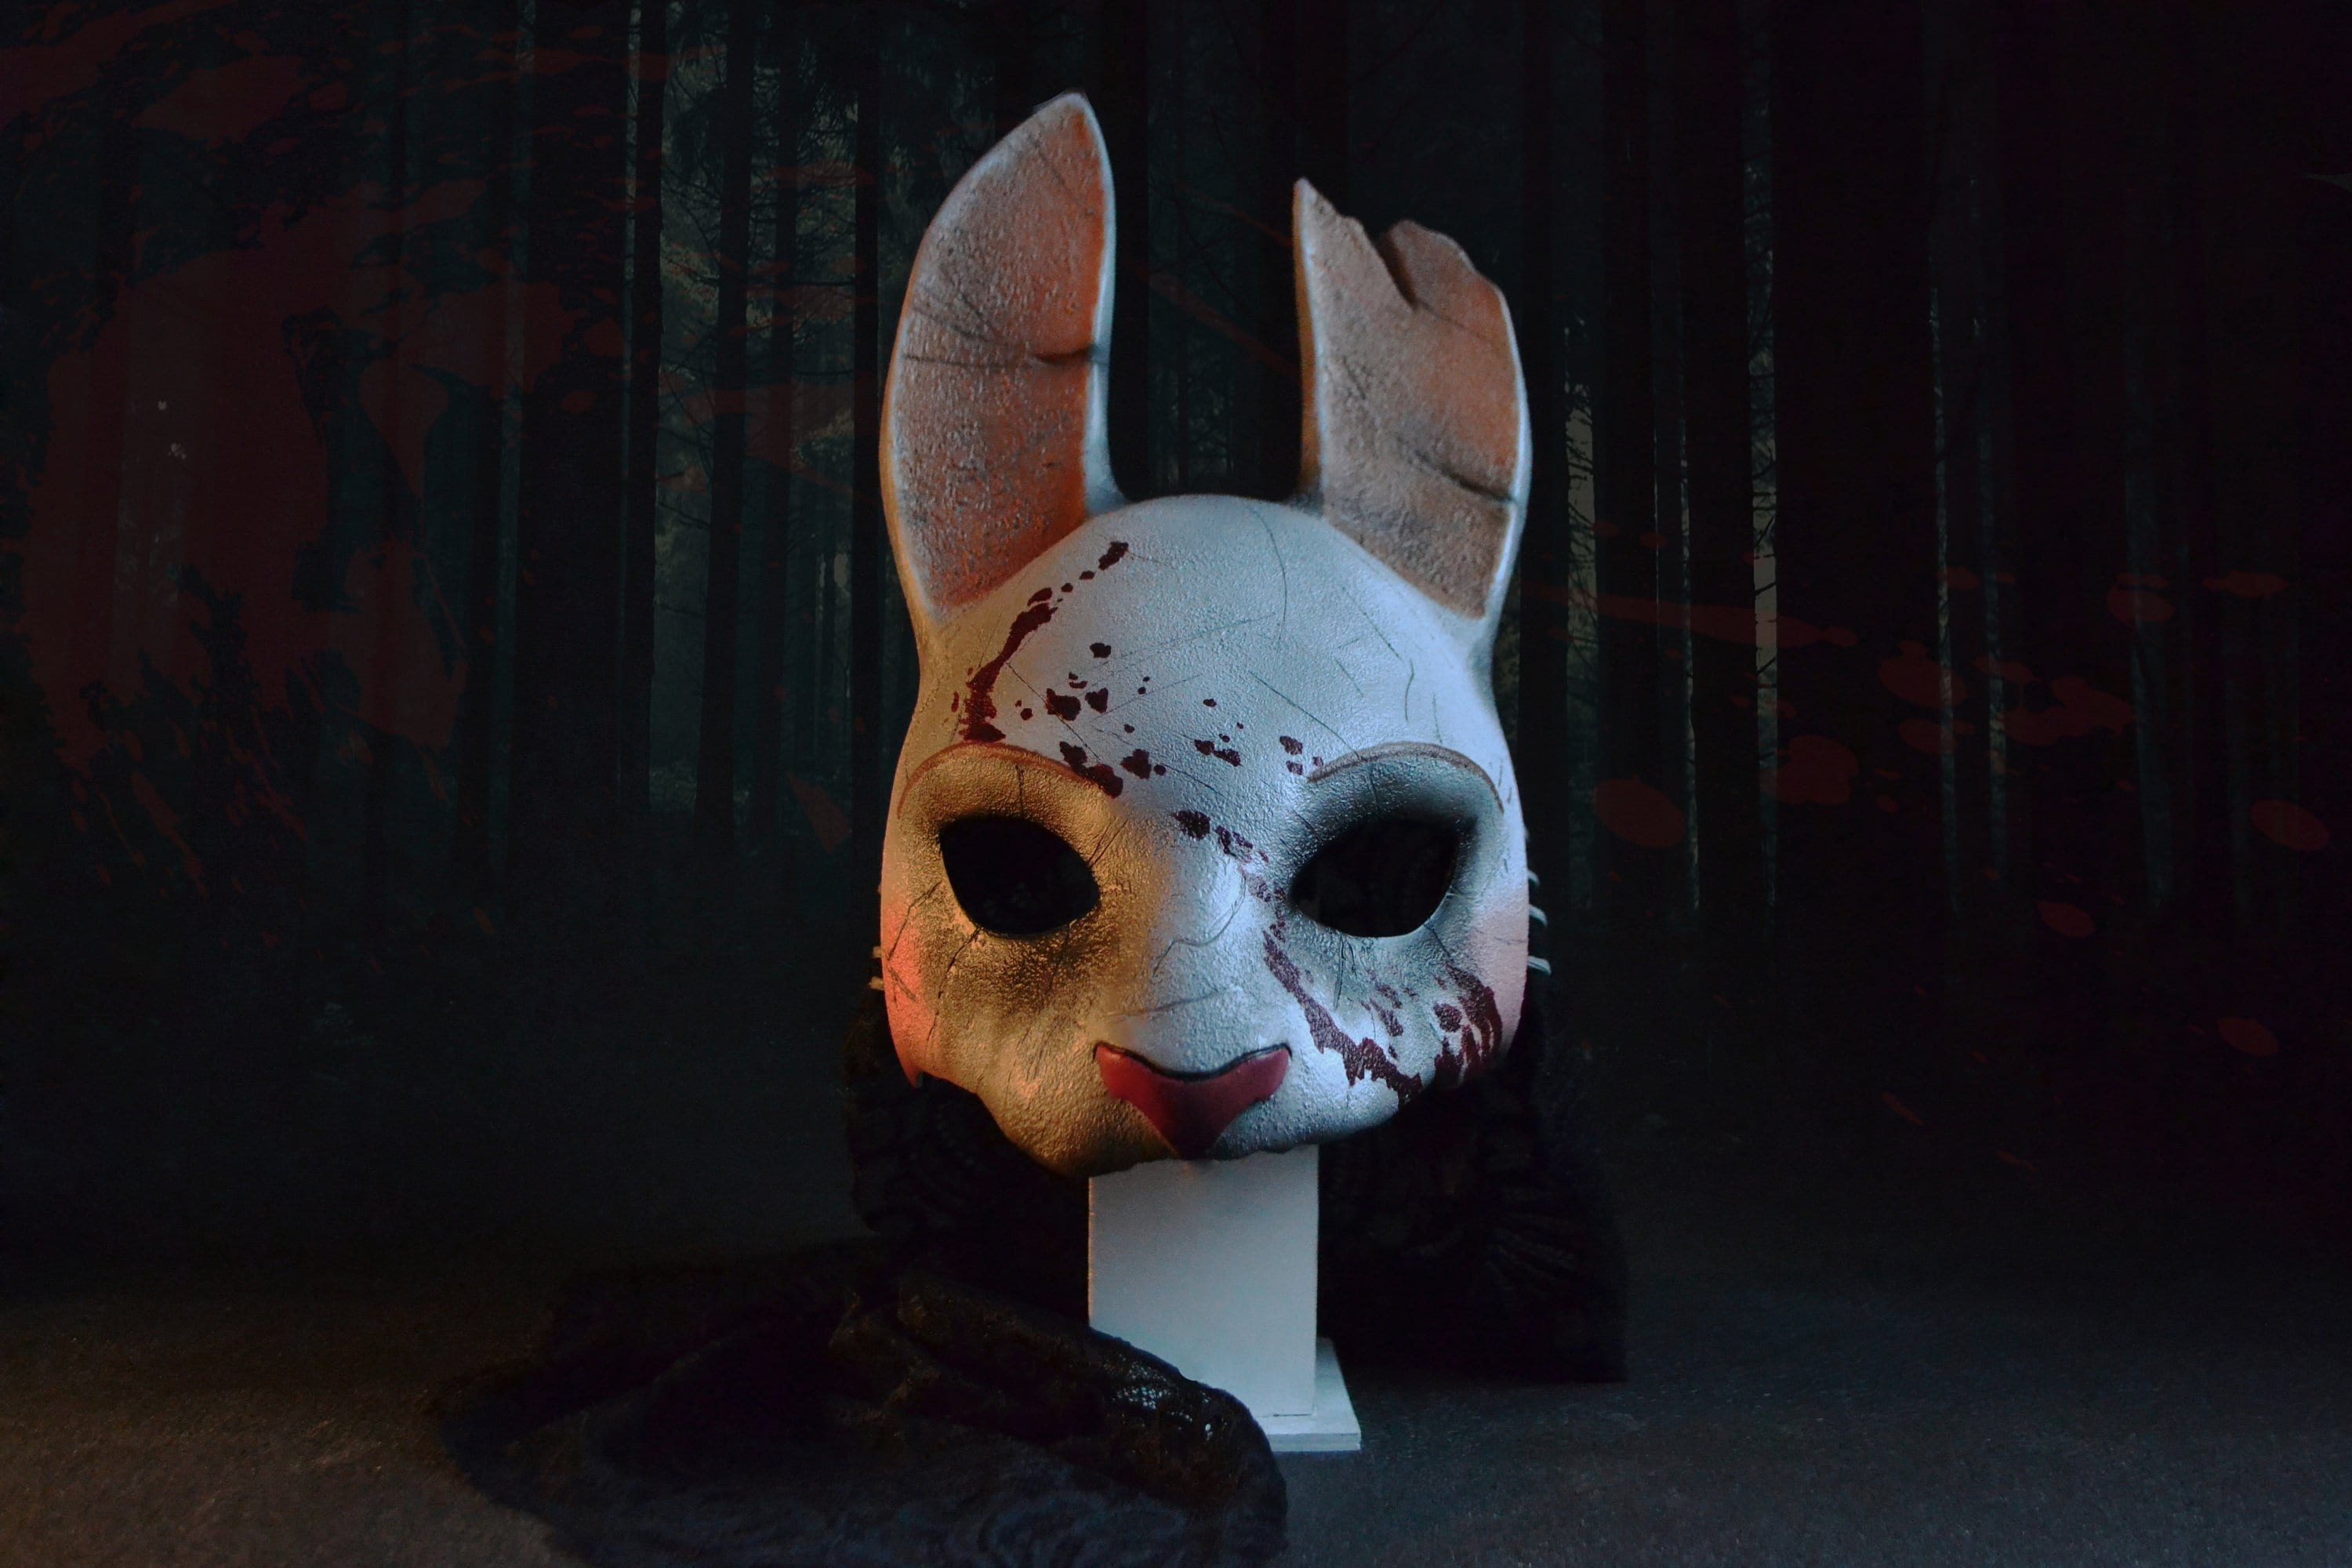 deaddaylight huntress mask wearable halloween costume | etsy